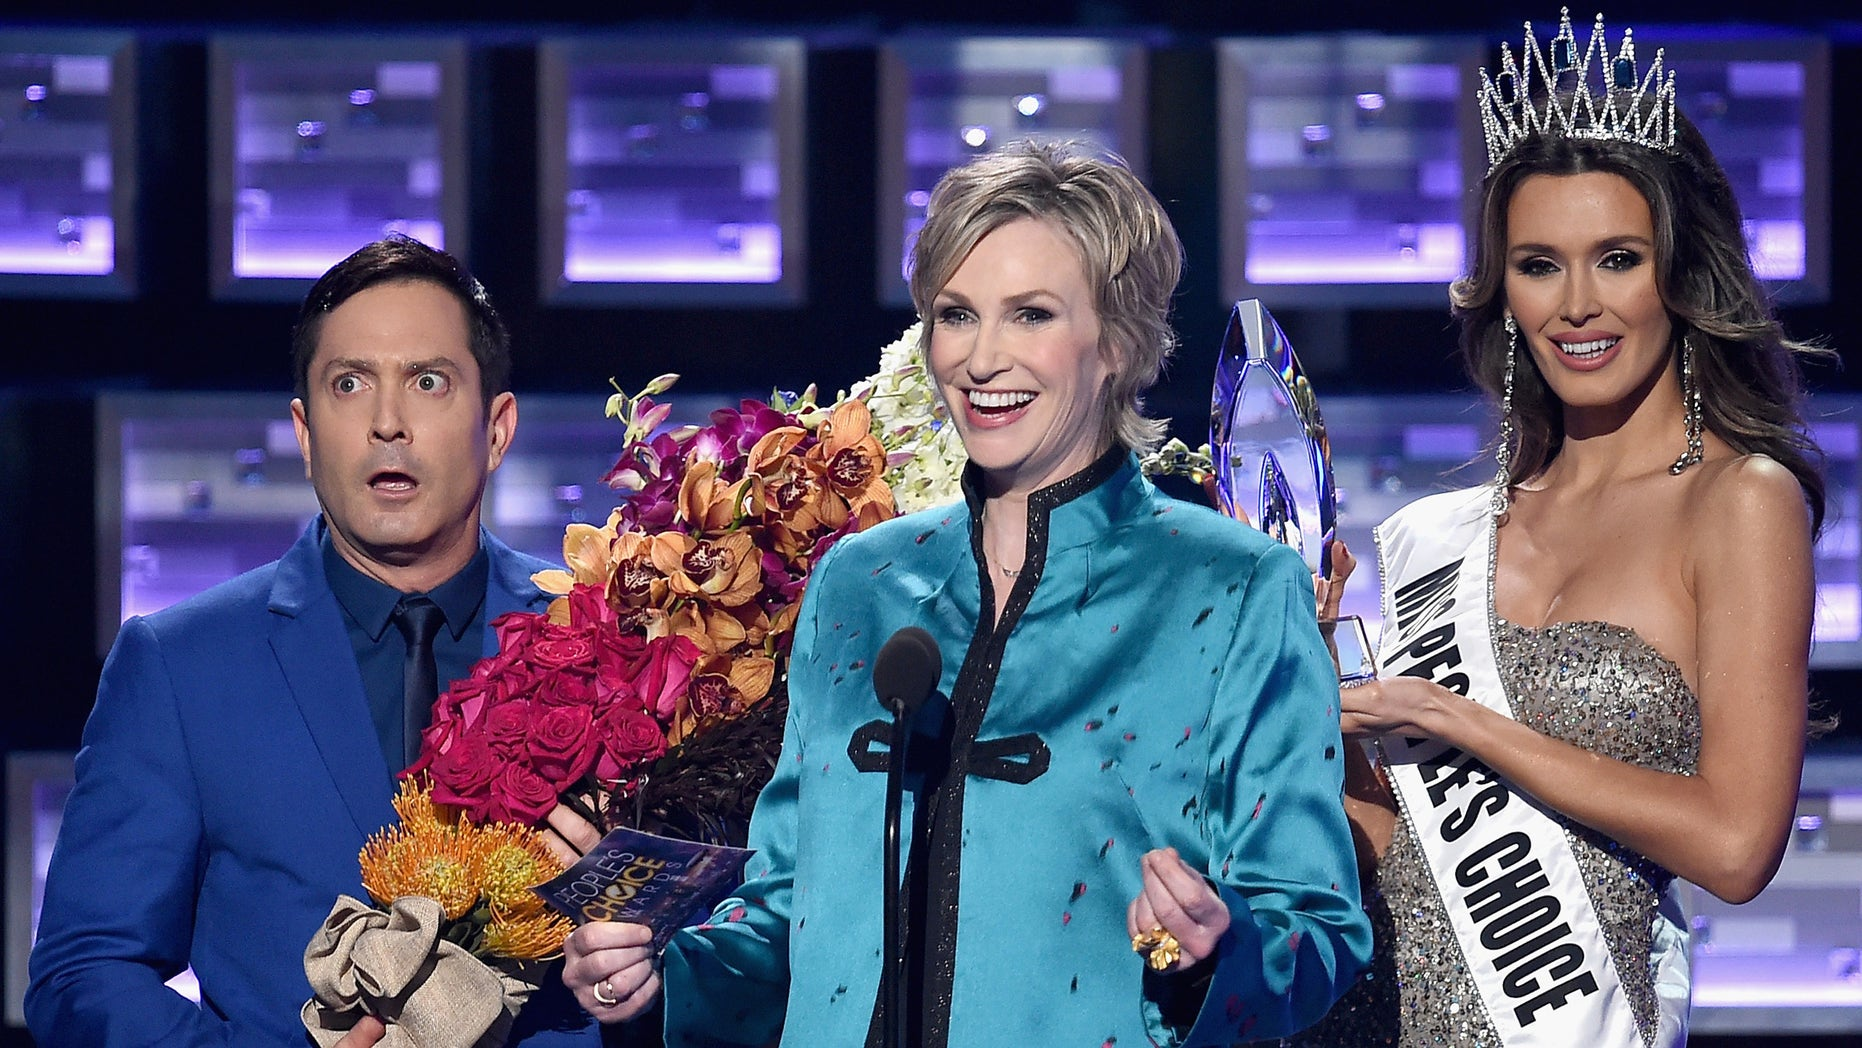 LOS ANGELES, CA - JANUARY 06: (L-R) Actor Thomas Lennon, host Jane Lynch, and Miss Colombia Ariadna Gutierrez perform onstage during the People's Choice Awards 2016 at Microsoft Theater on January 6, 2016 in Los Angeles, California.  (Photo by Kevin Winter/Getty Images)